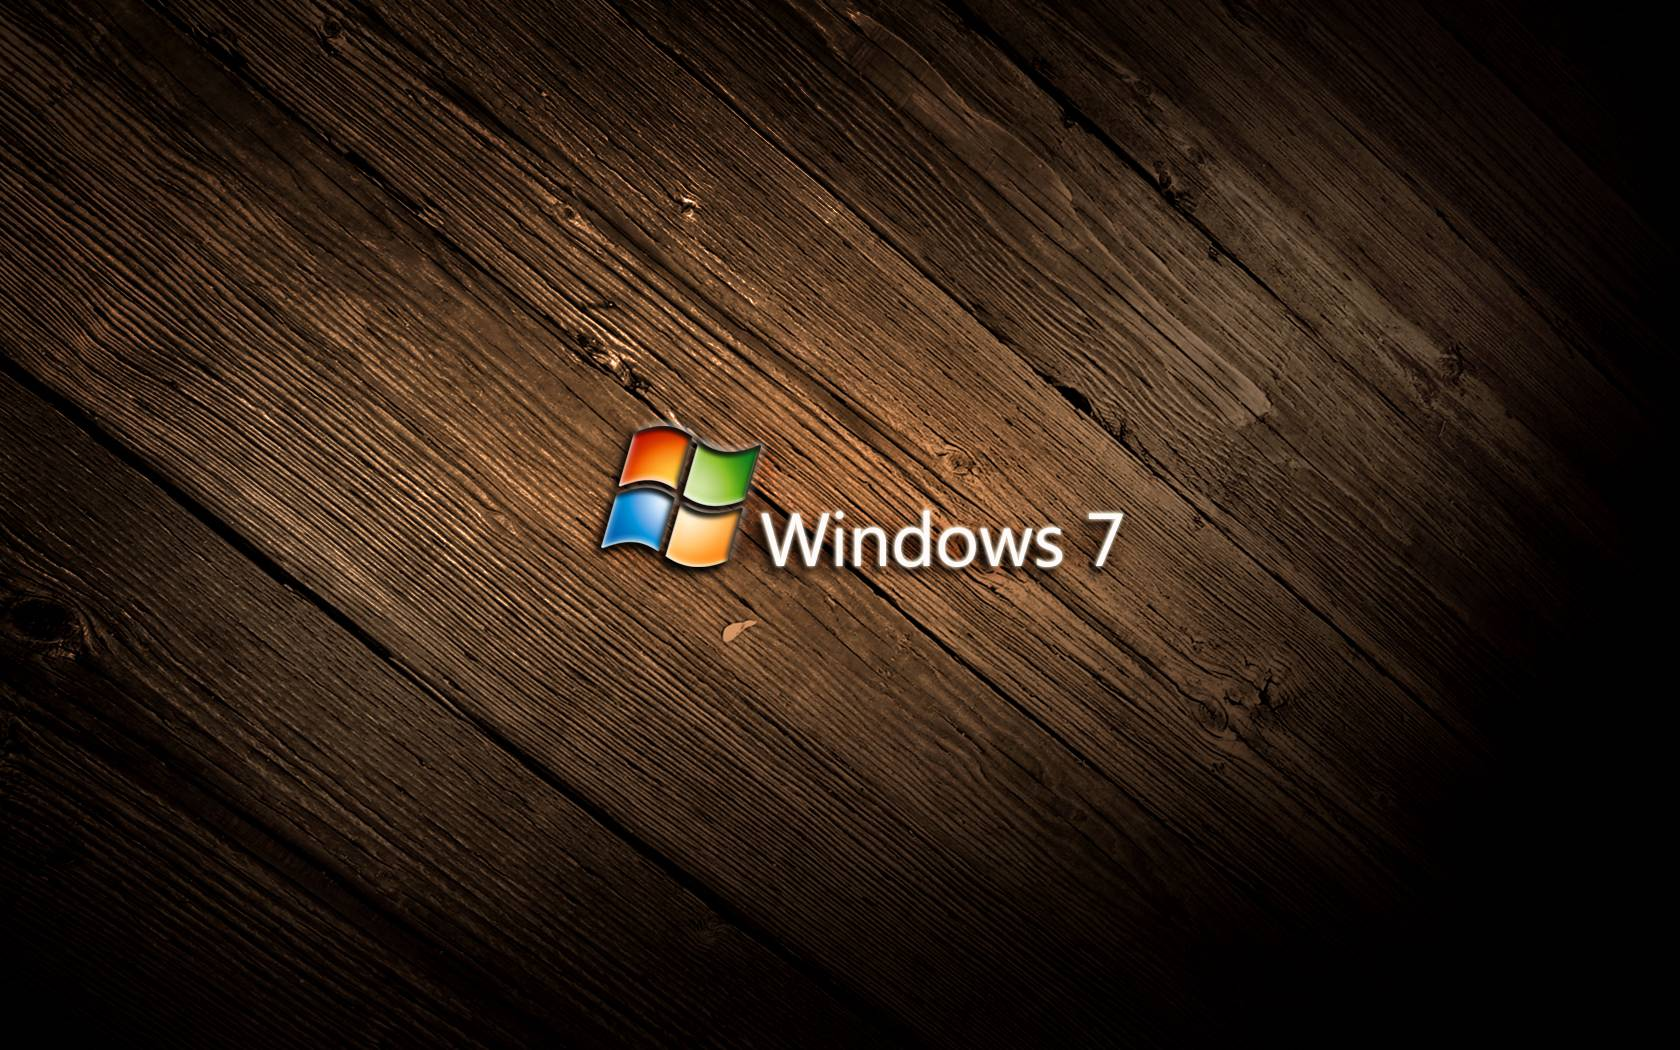 windows 7 hd wallpapers - wallpaper cave